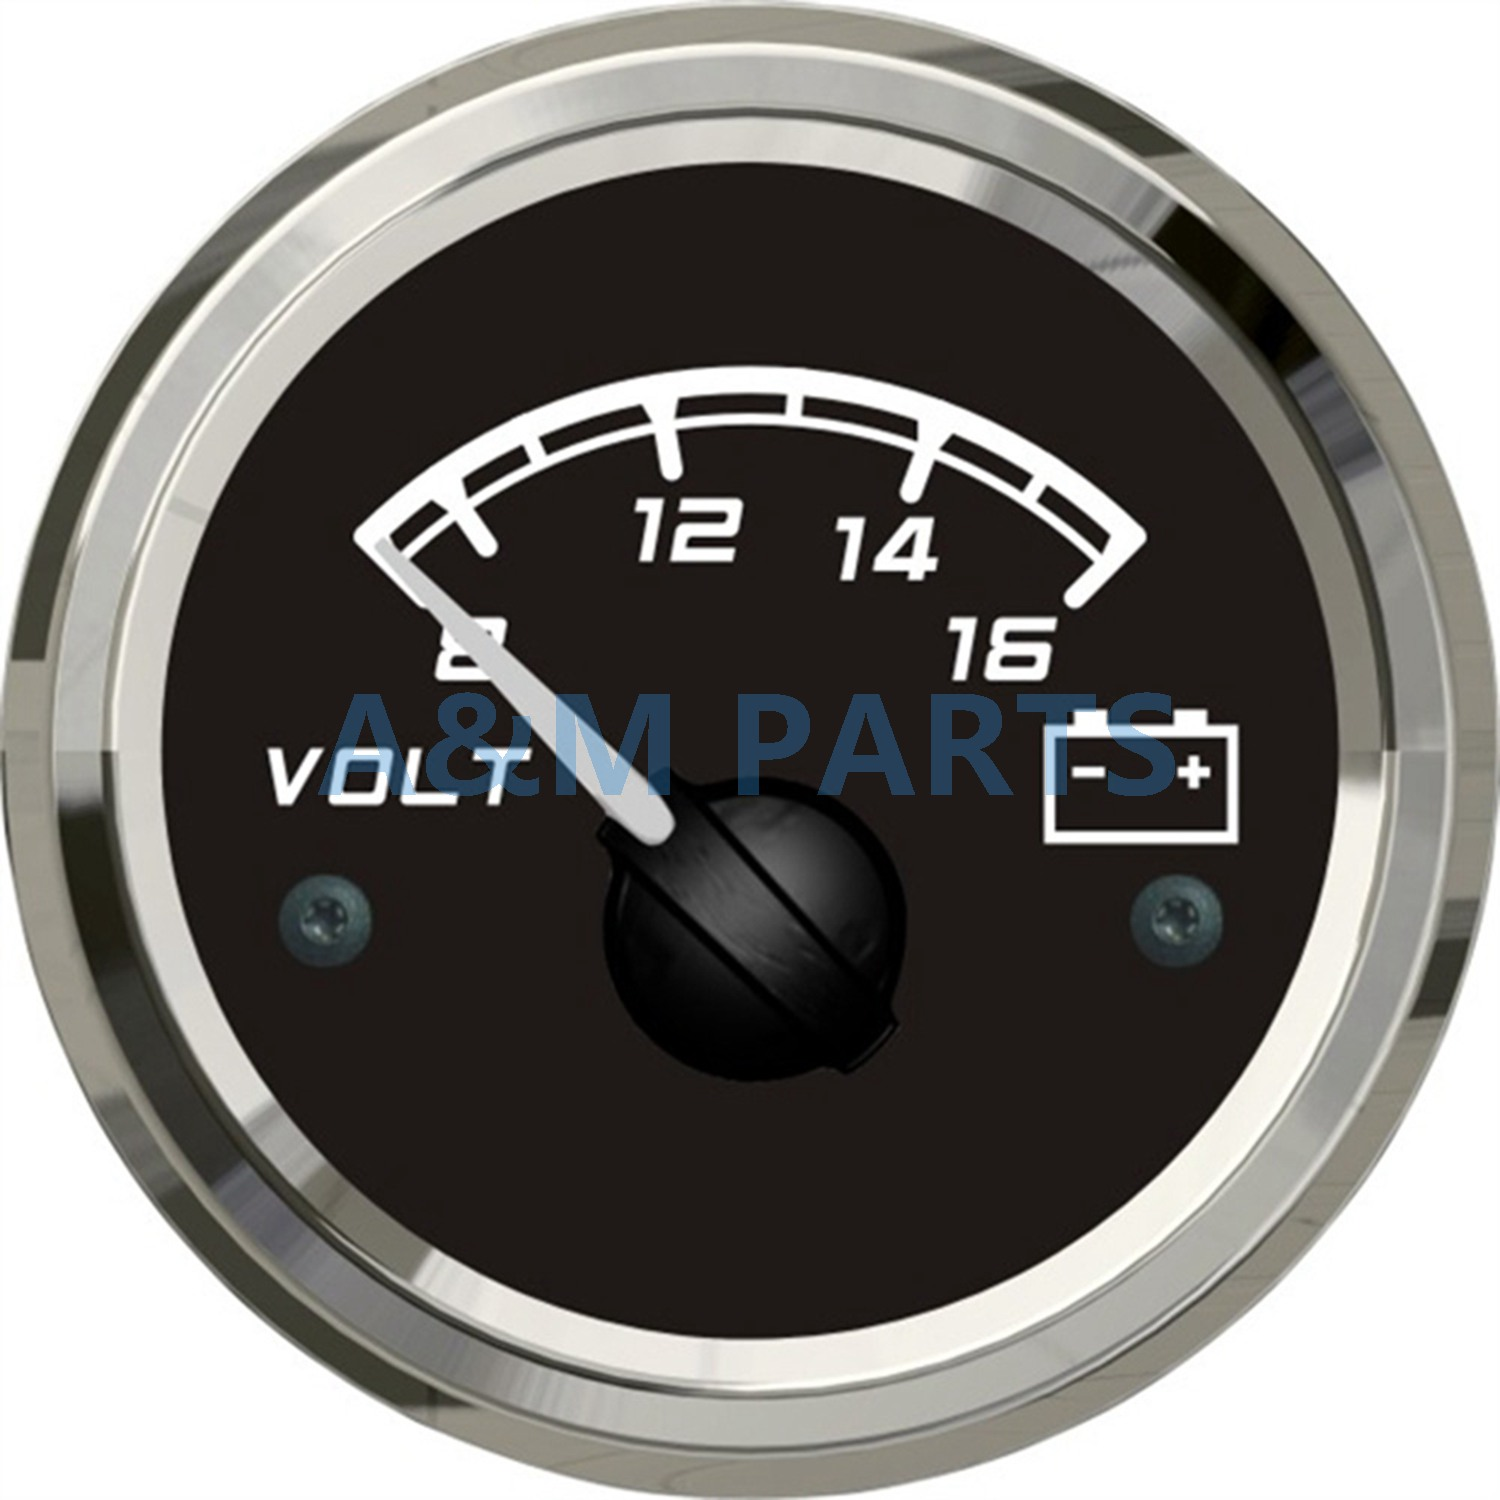 Rv Battery Voltage Gauge : Kus marine battery voltage gauge boat car truck rv